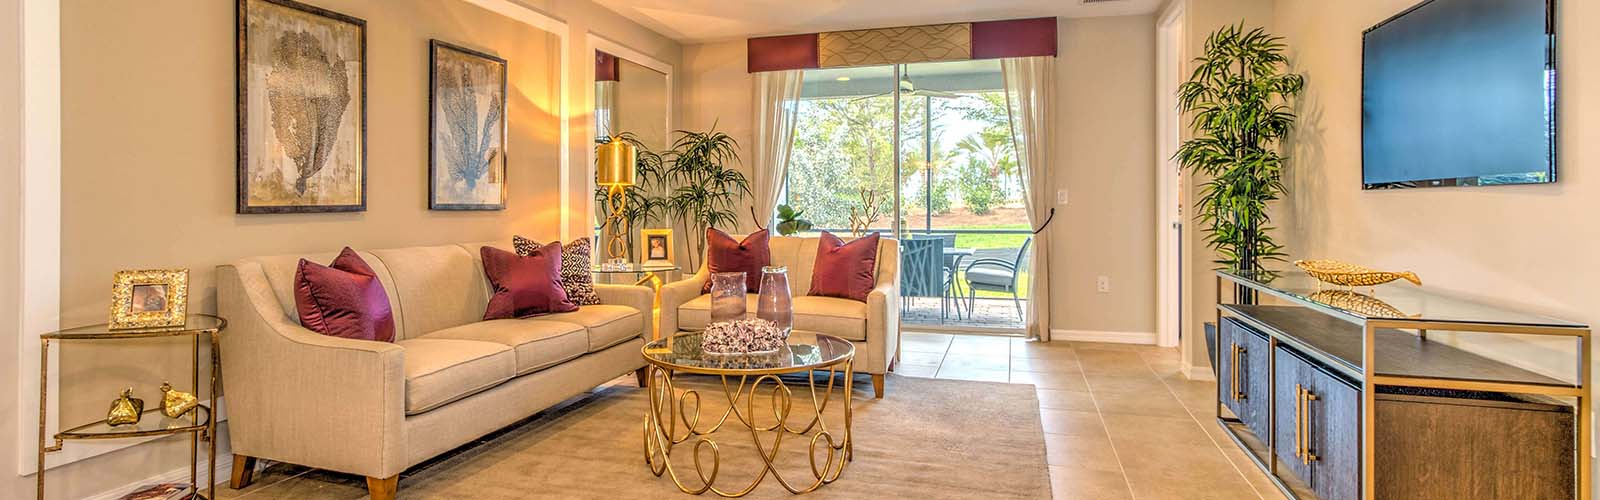 Naples reserve greets coral harbors first villa homebuyers m4hsunfo